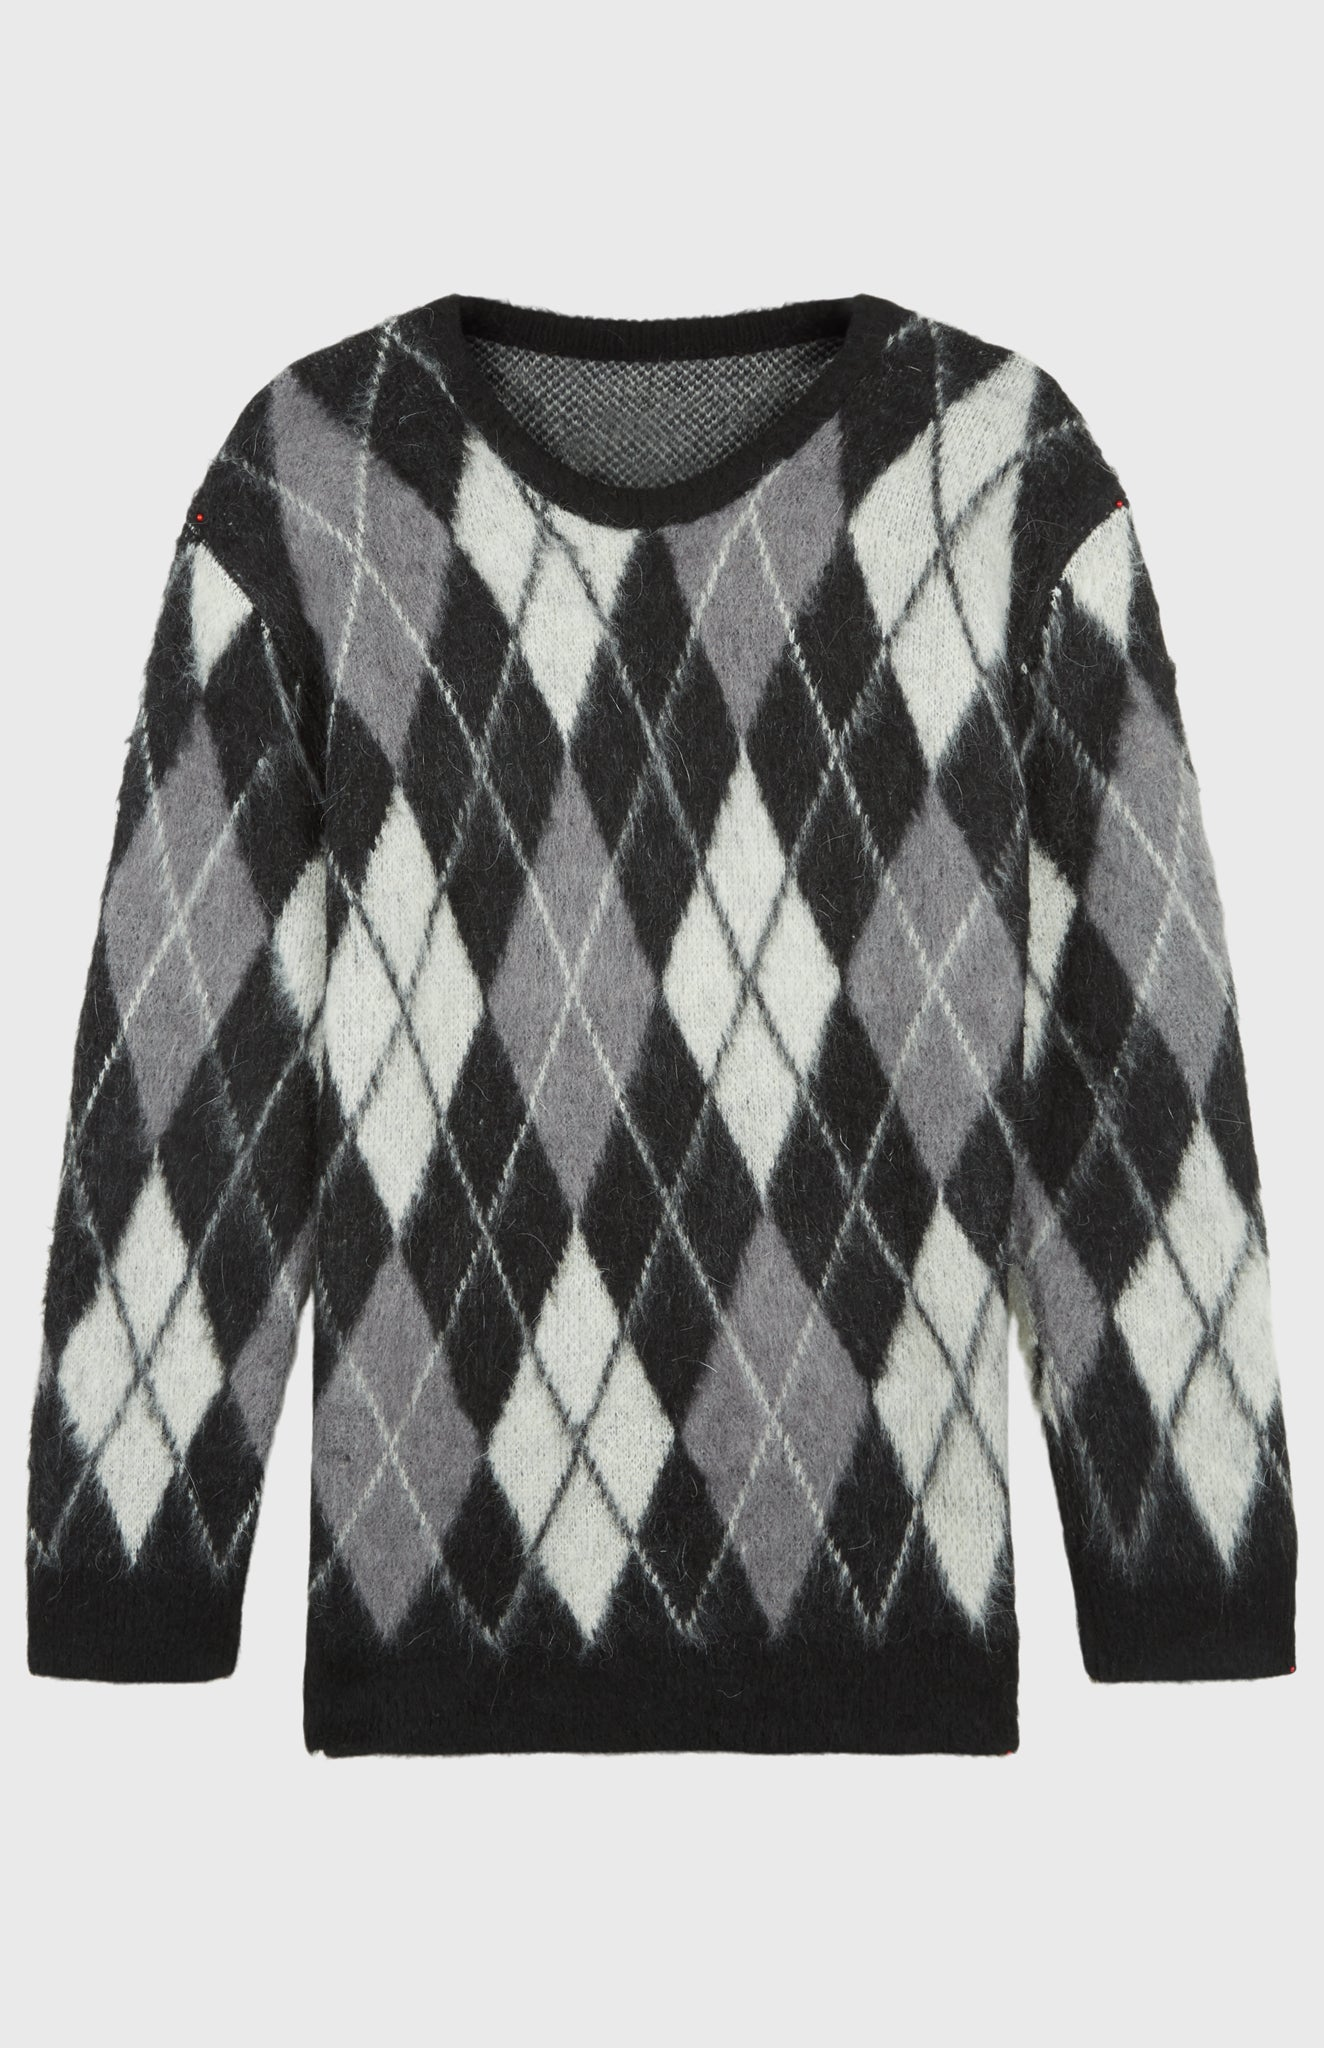 Pringle Reissued Unisex Monochrome Argyle Jumper in mohair